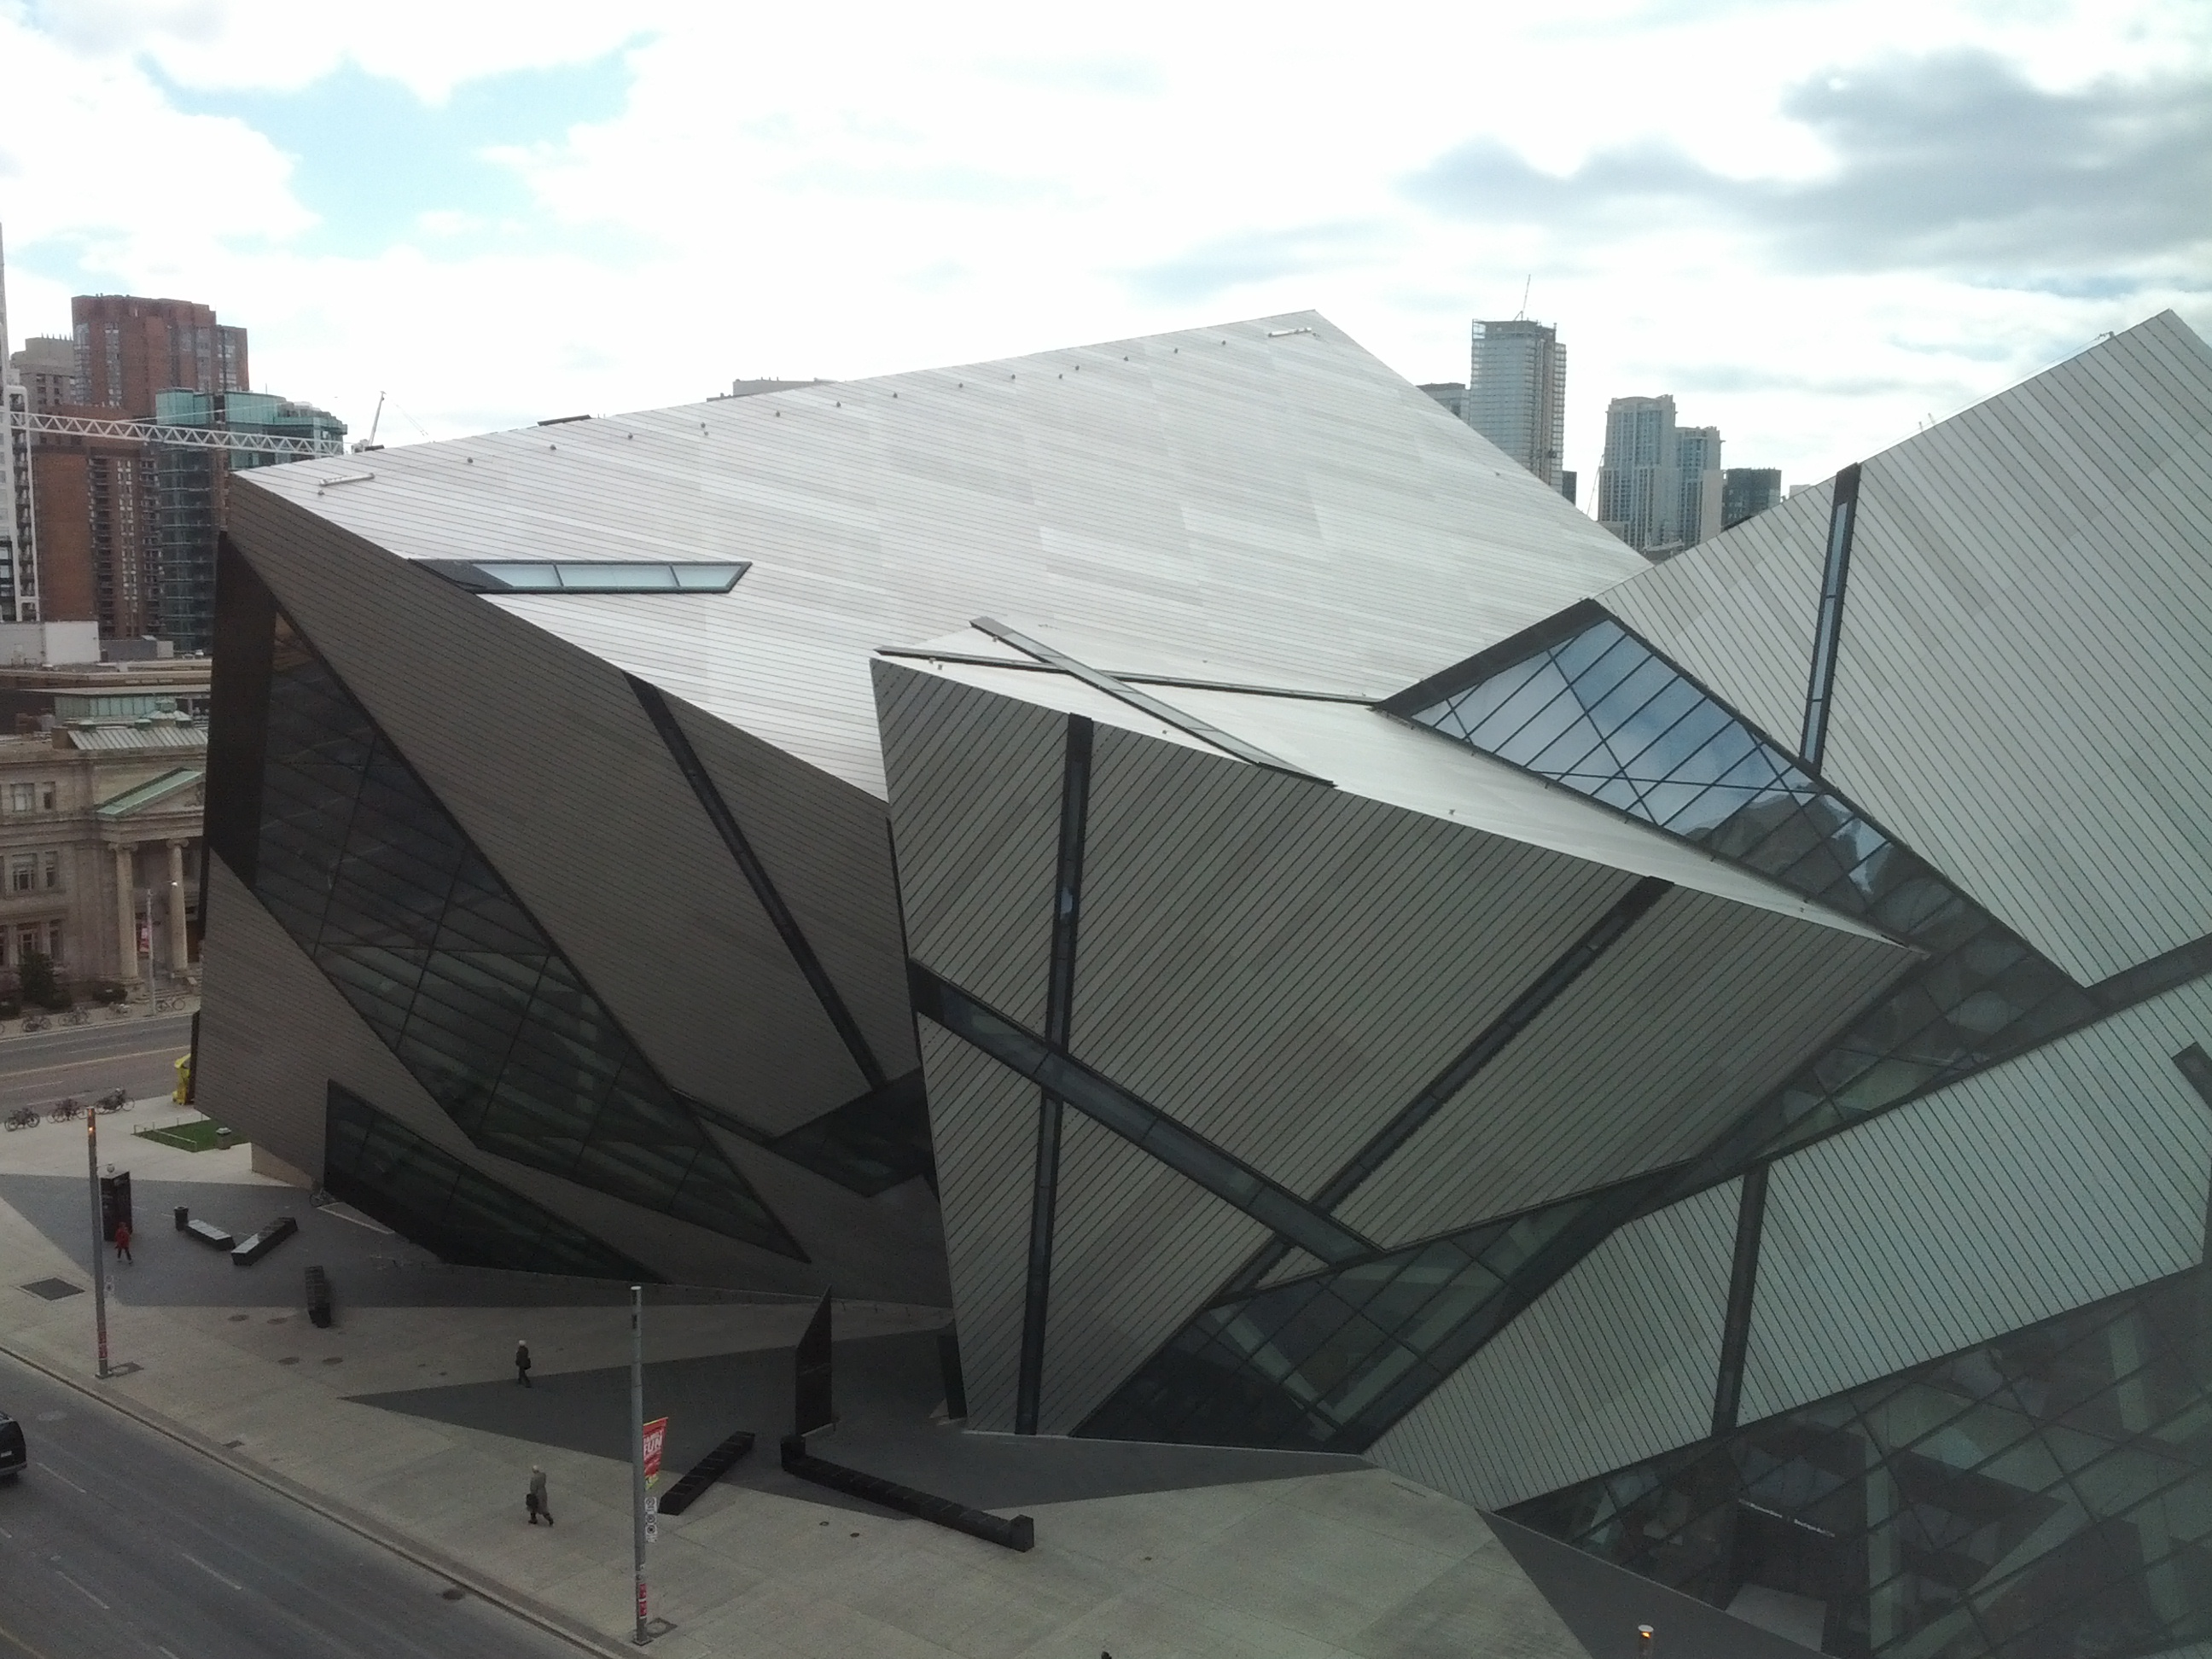 MUSEUM HOUSE - ROM